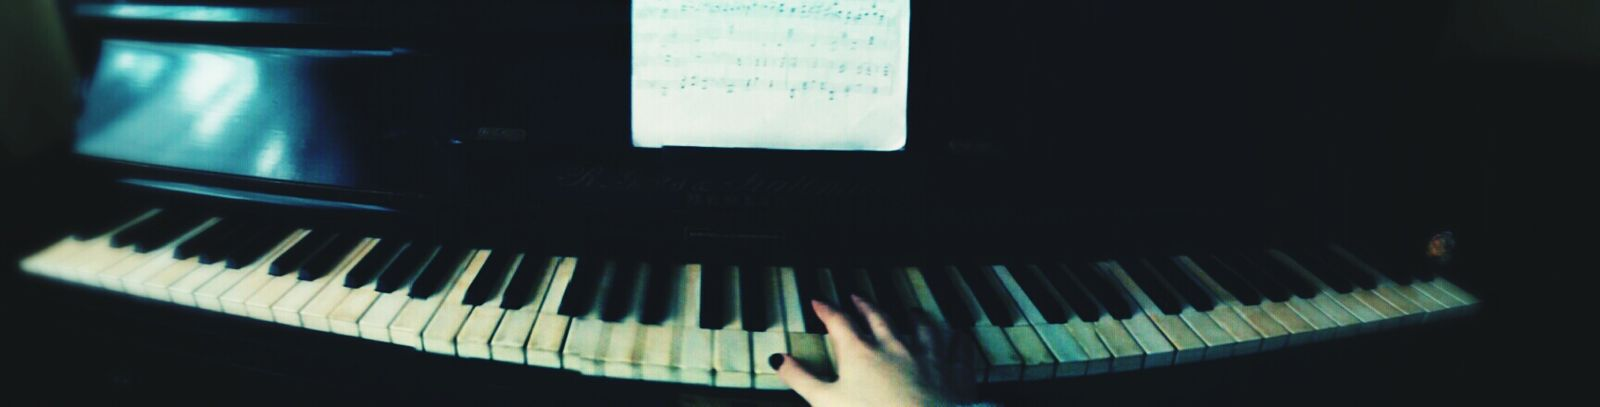 Old Piano Music Piano Time Notes